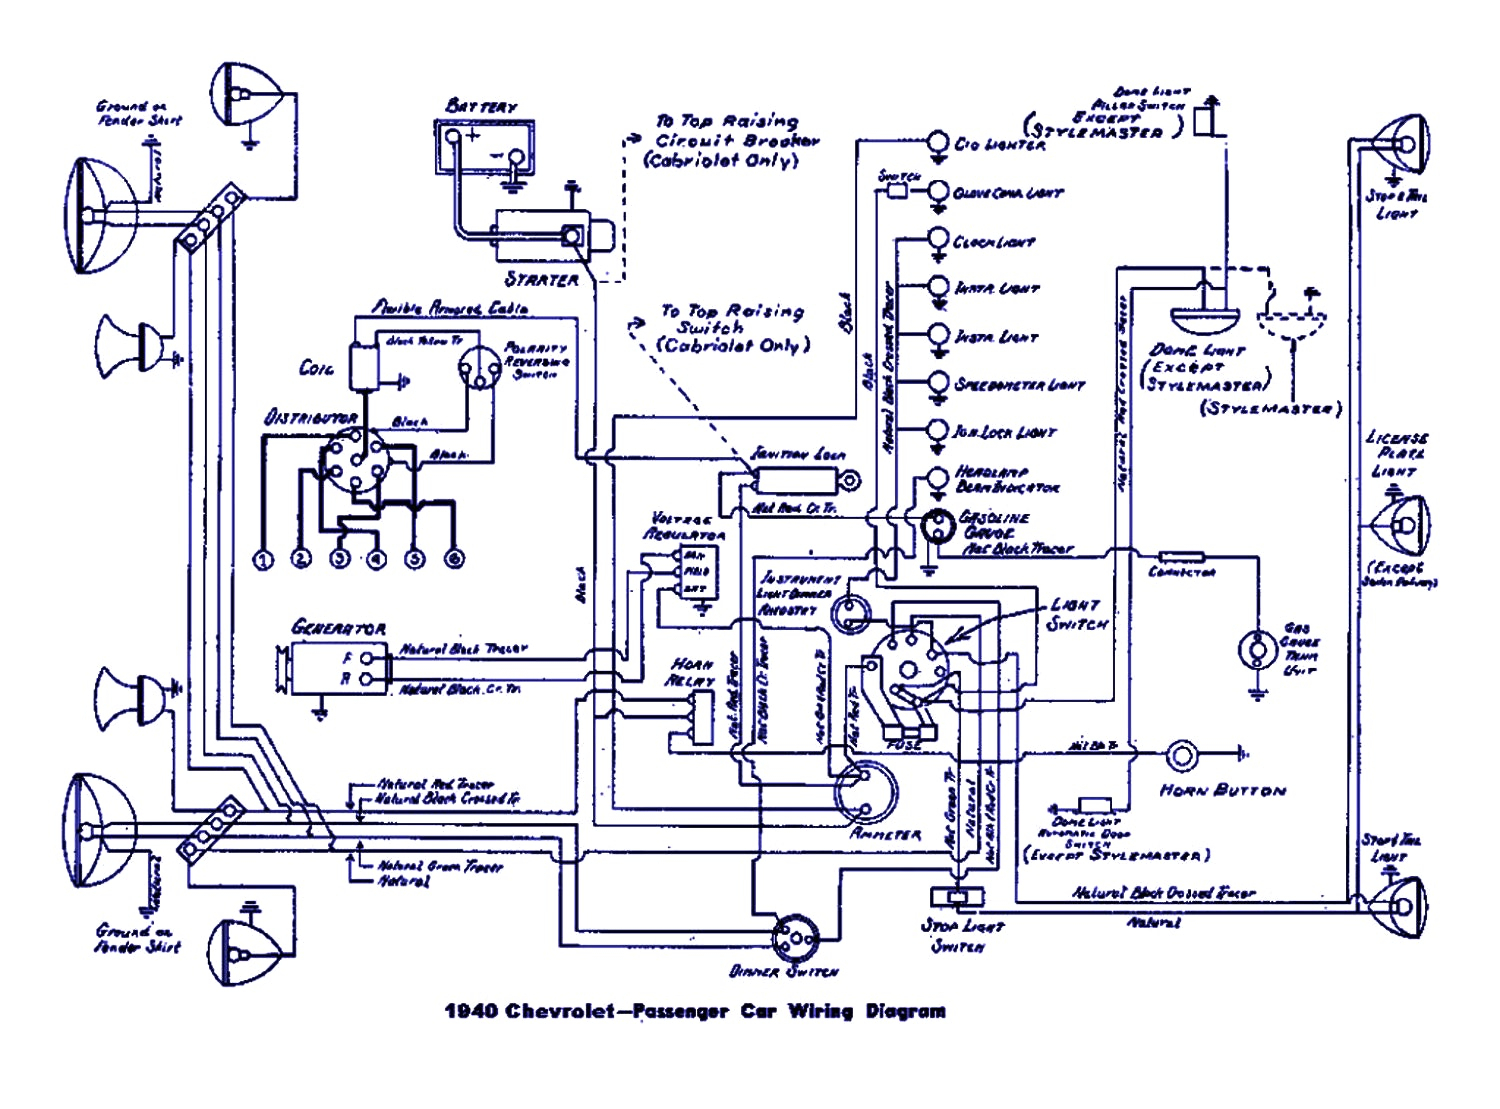 1997 ez go wiring diagram today diagram database EZ Go Electrical Diagram